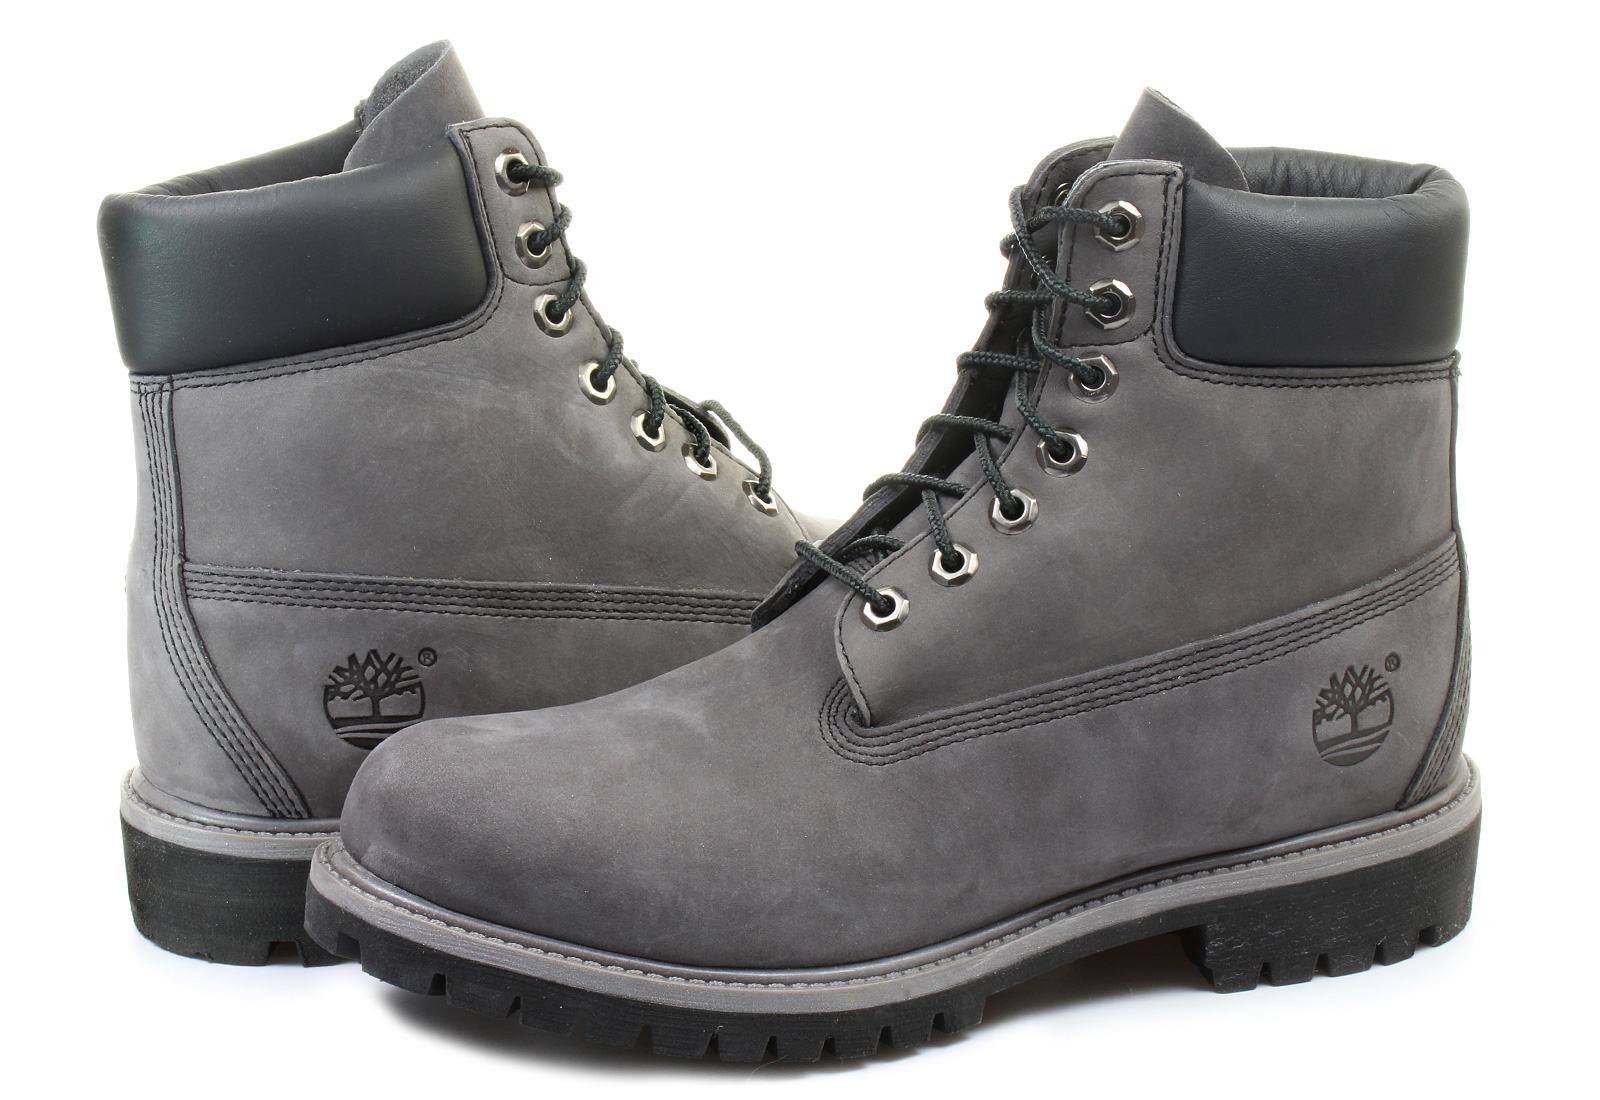 12acbdb3e3 Timberland Topánky - 6 Inch Premium Boot - 6609A-GRY - Tenisky ...